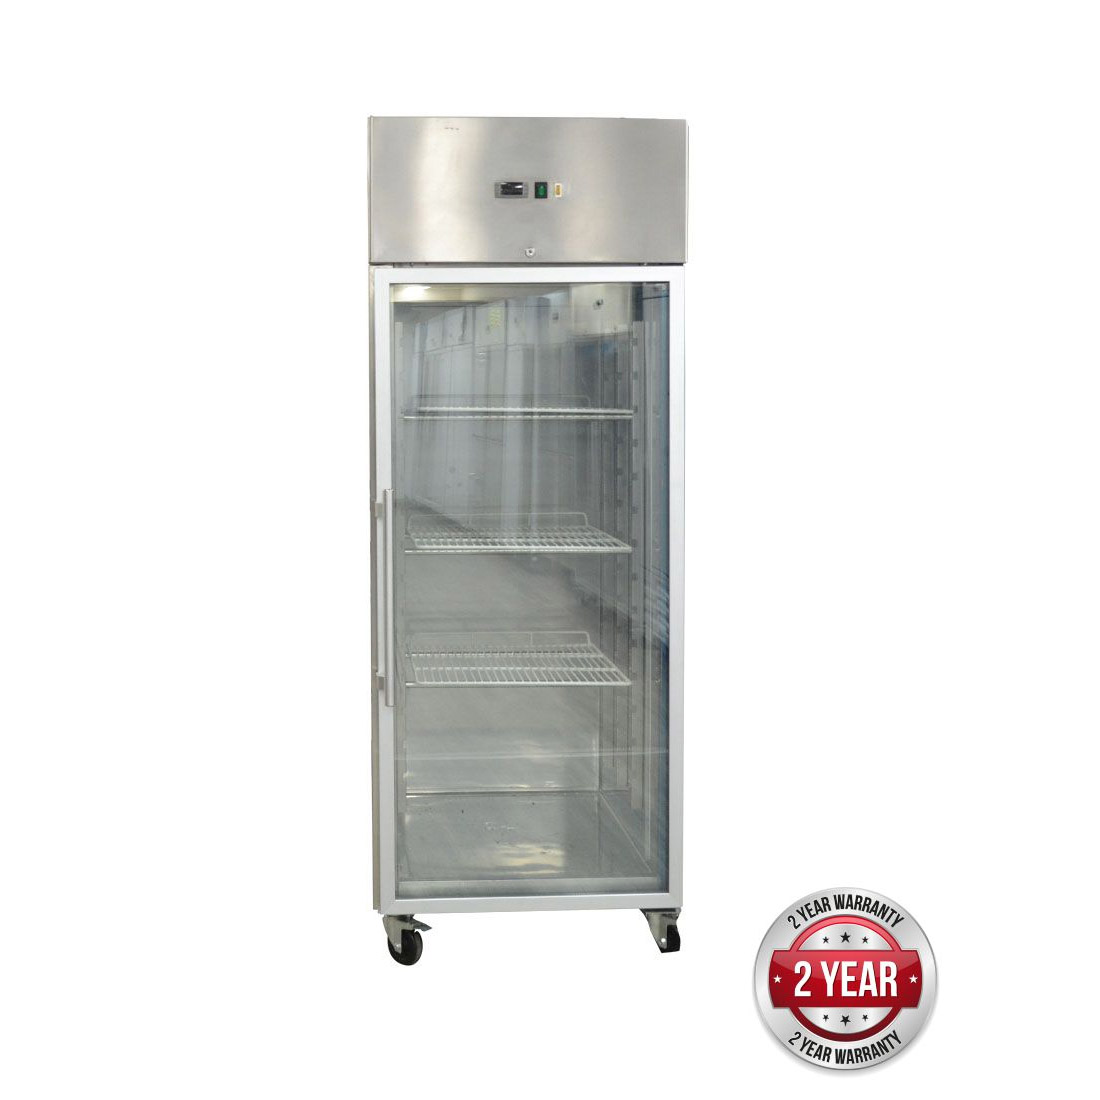 GN650TNG GRAND ULTRA Single Glass Door Upright Fridge 685L